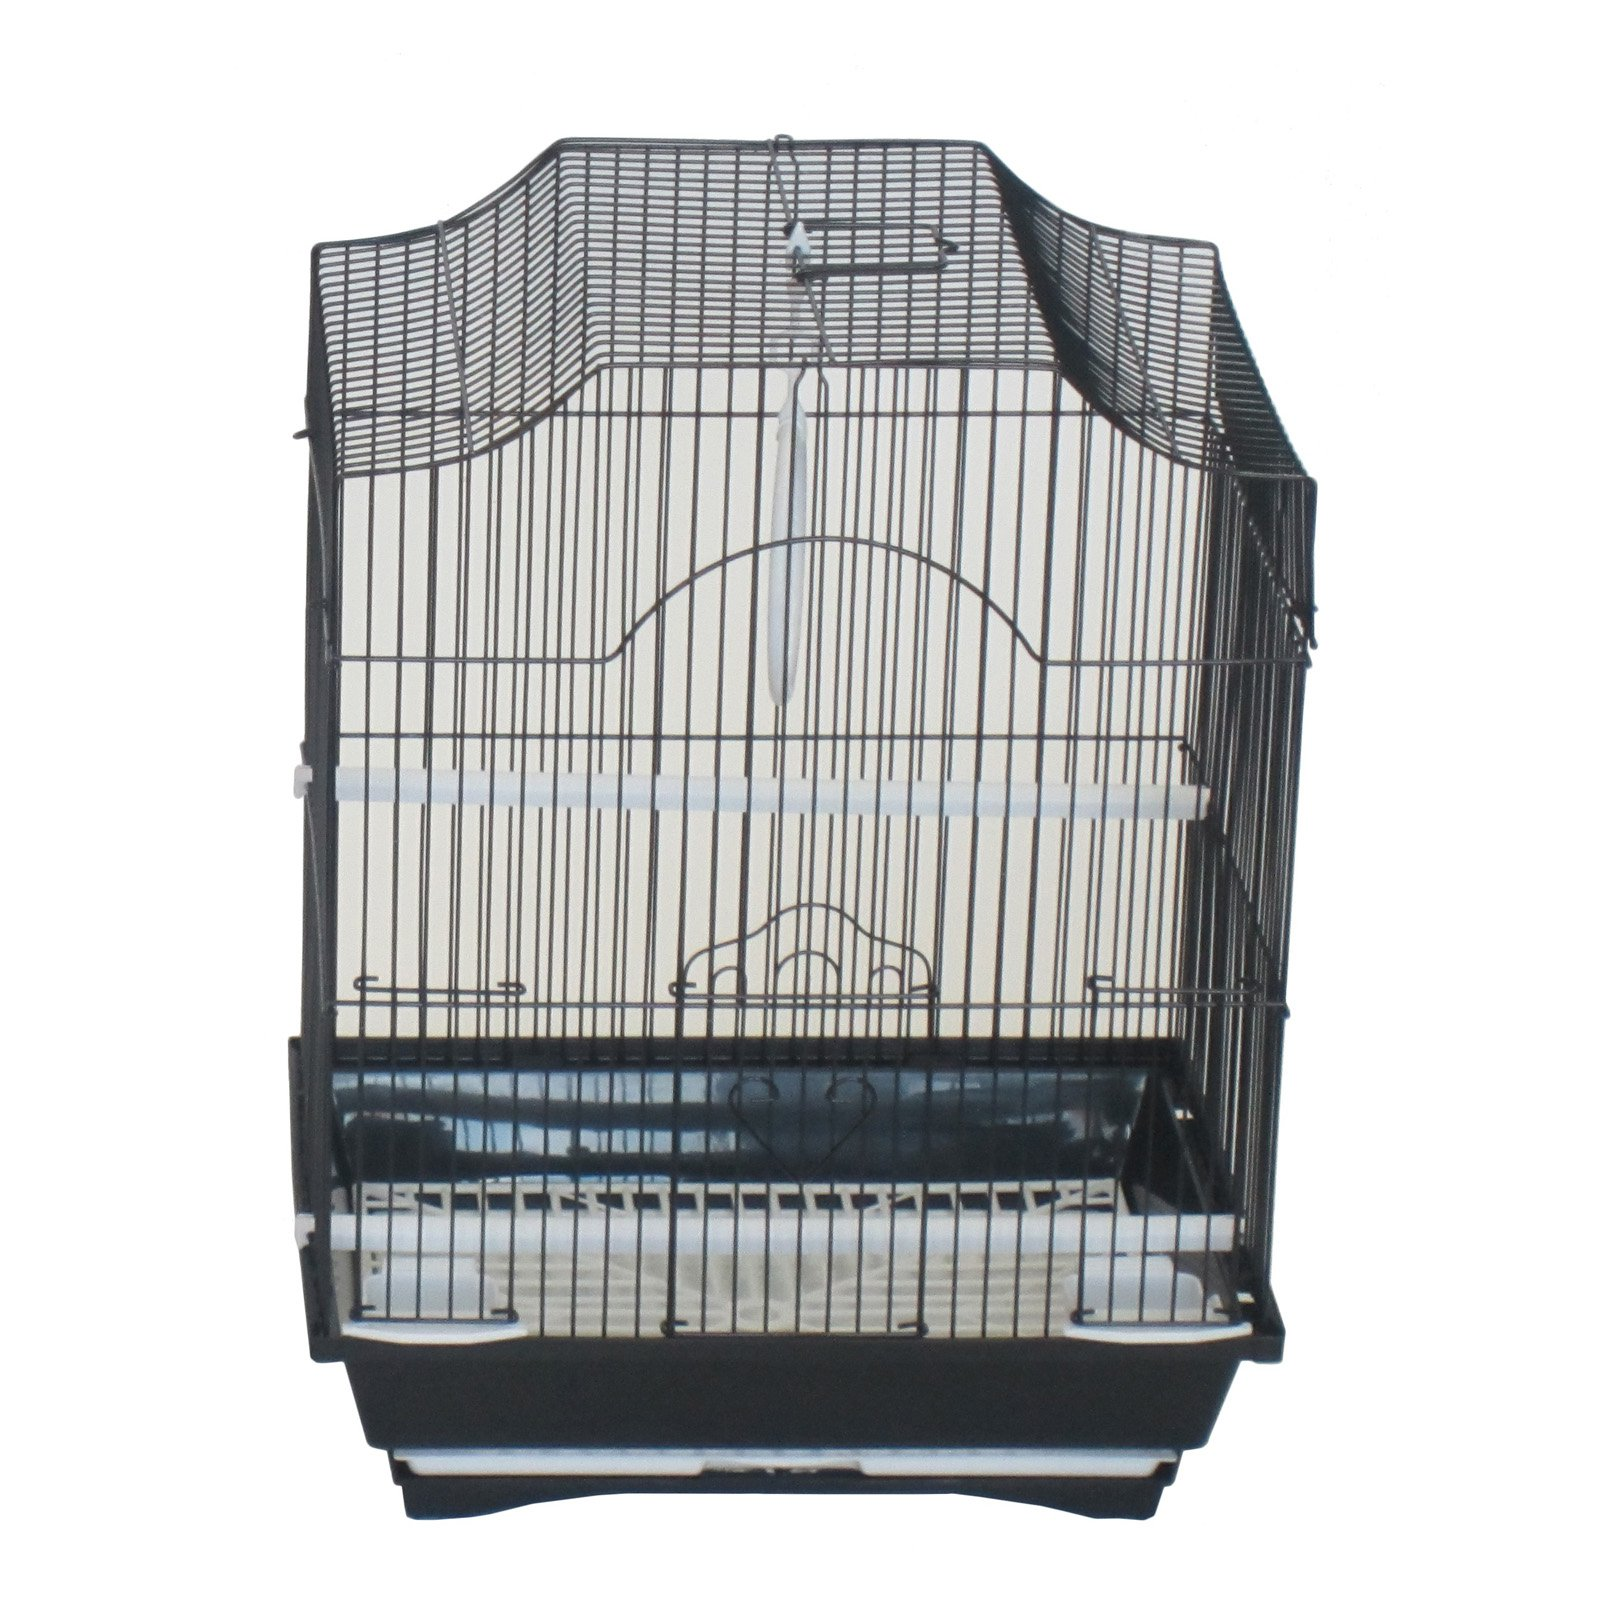 YML Cornerless Flat Top Bird Cage - Medium